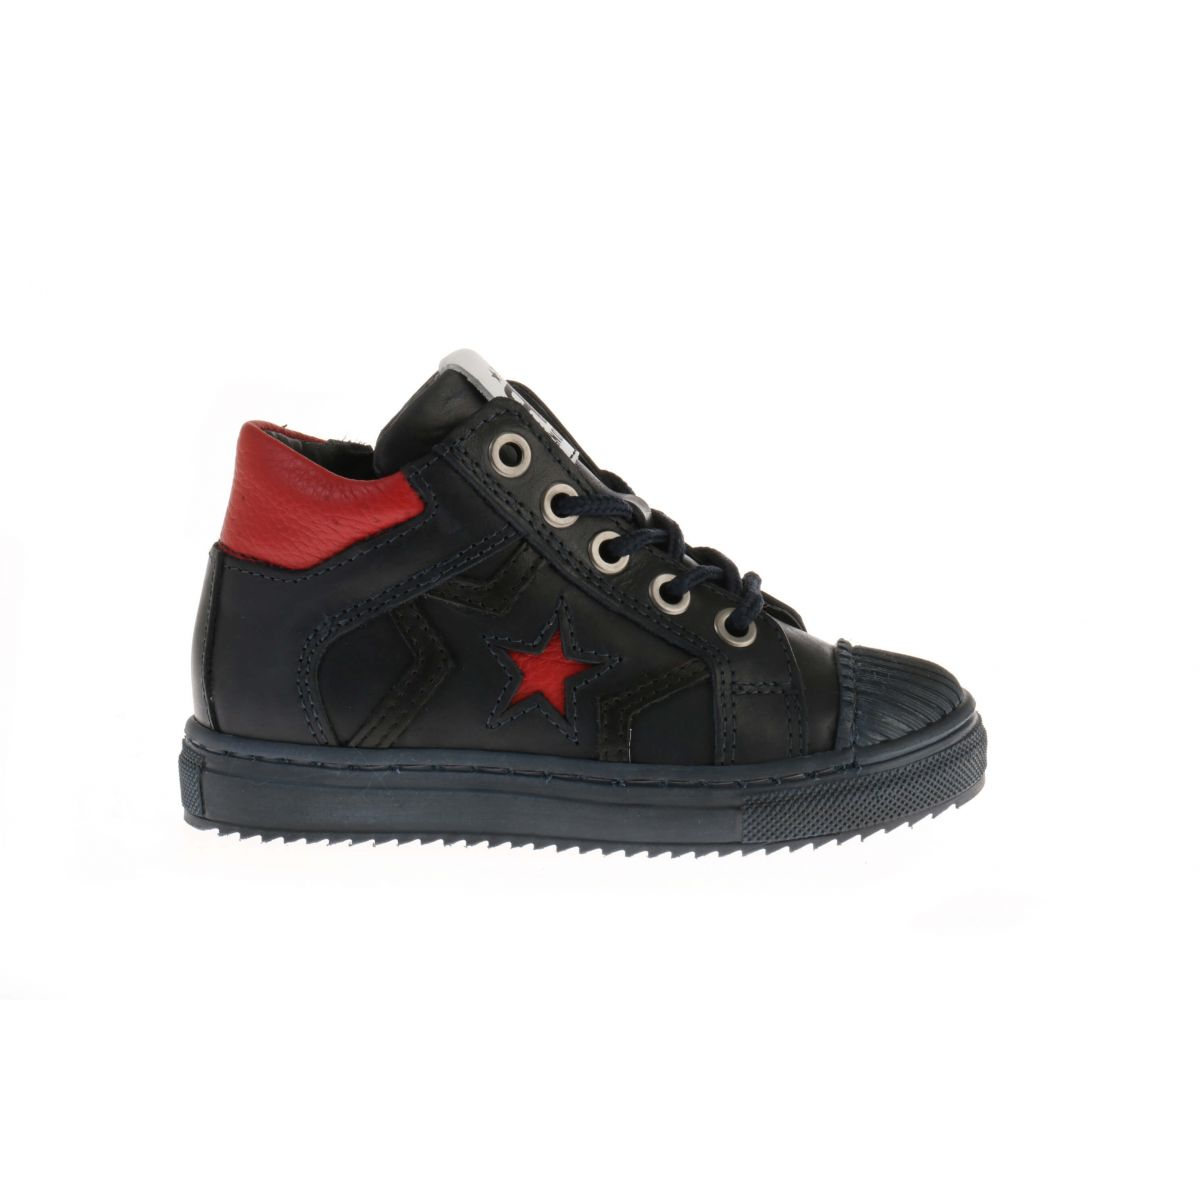 Pinocchio P1581 Sneakers Blauw/Rood